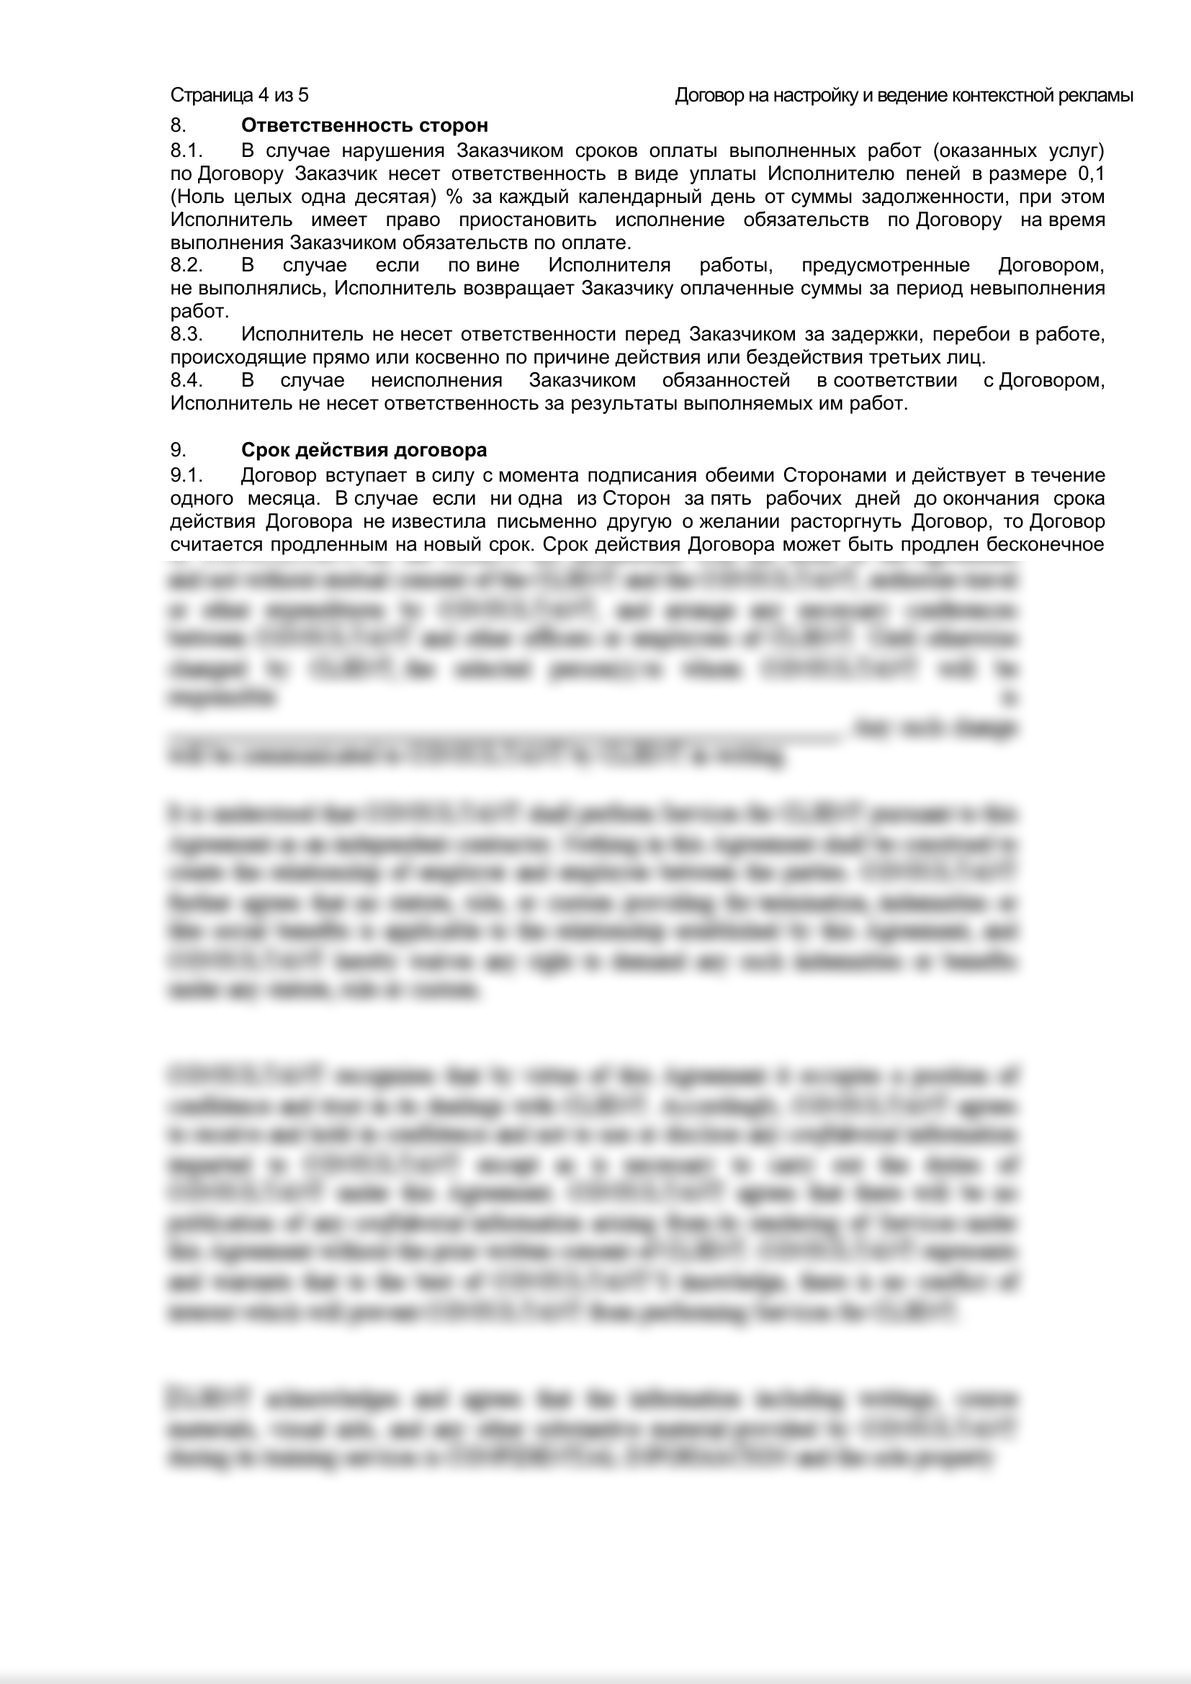 Contract for setting up and maintaining contextual advertising-3